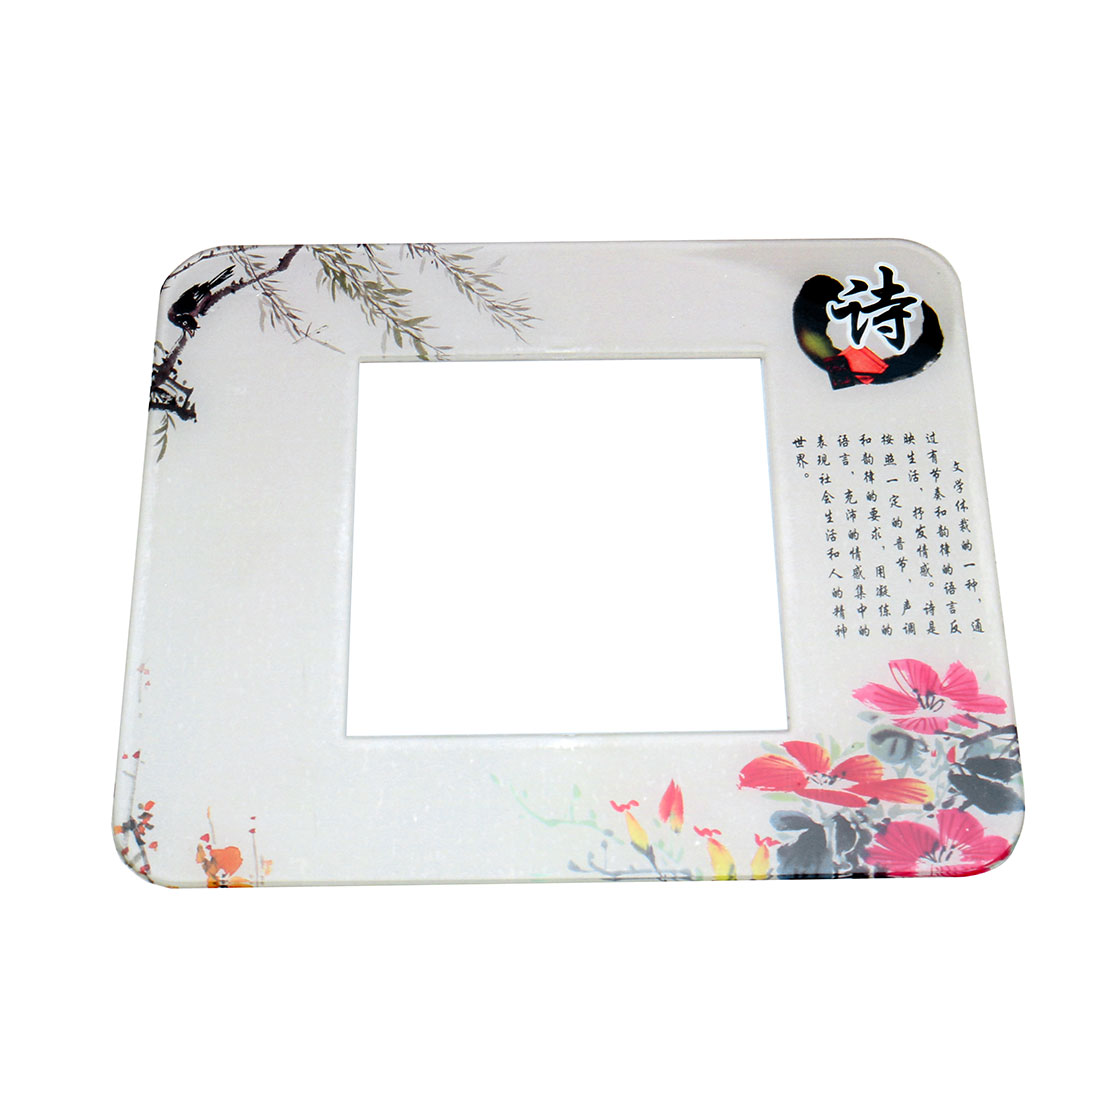 Chinese Characters Printed Plastic Switch Sticker Cover Socket Decoration